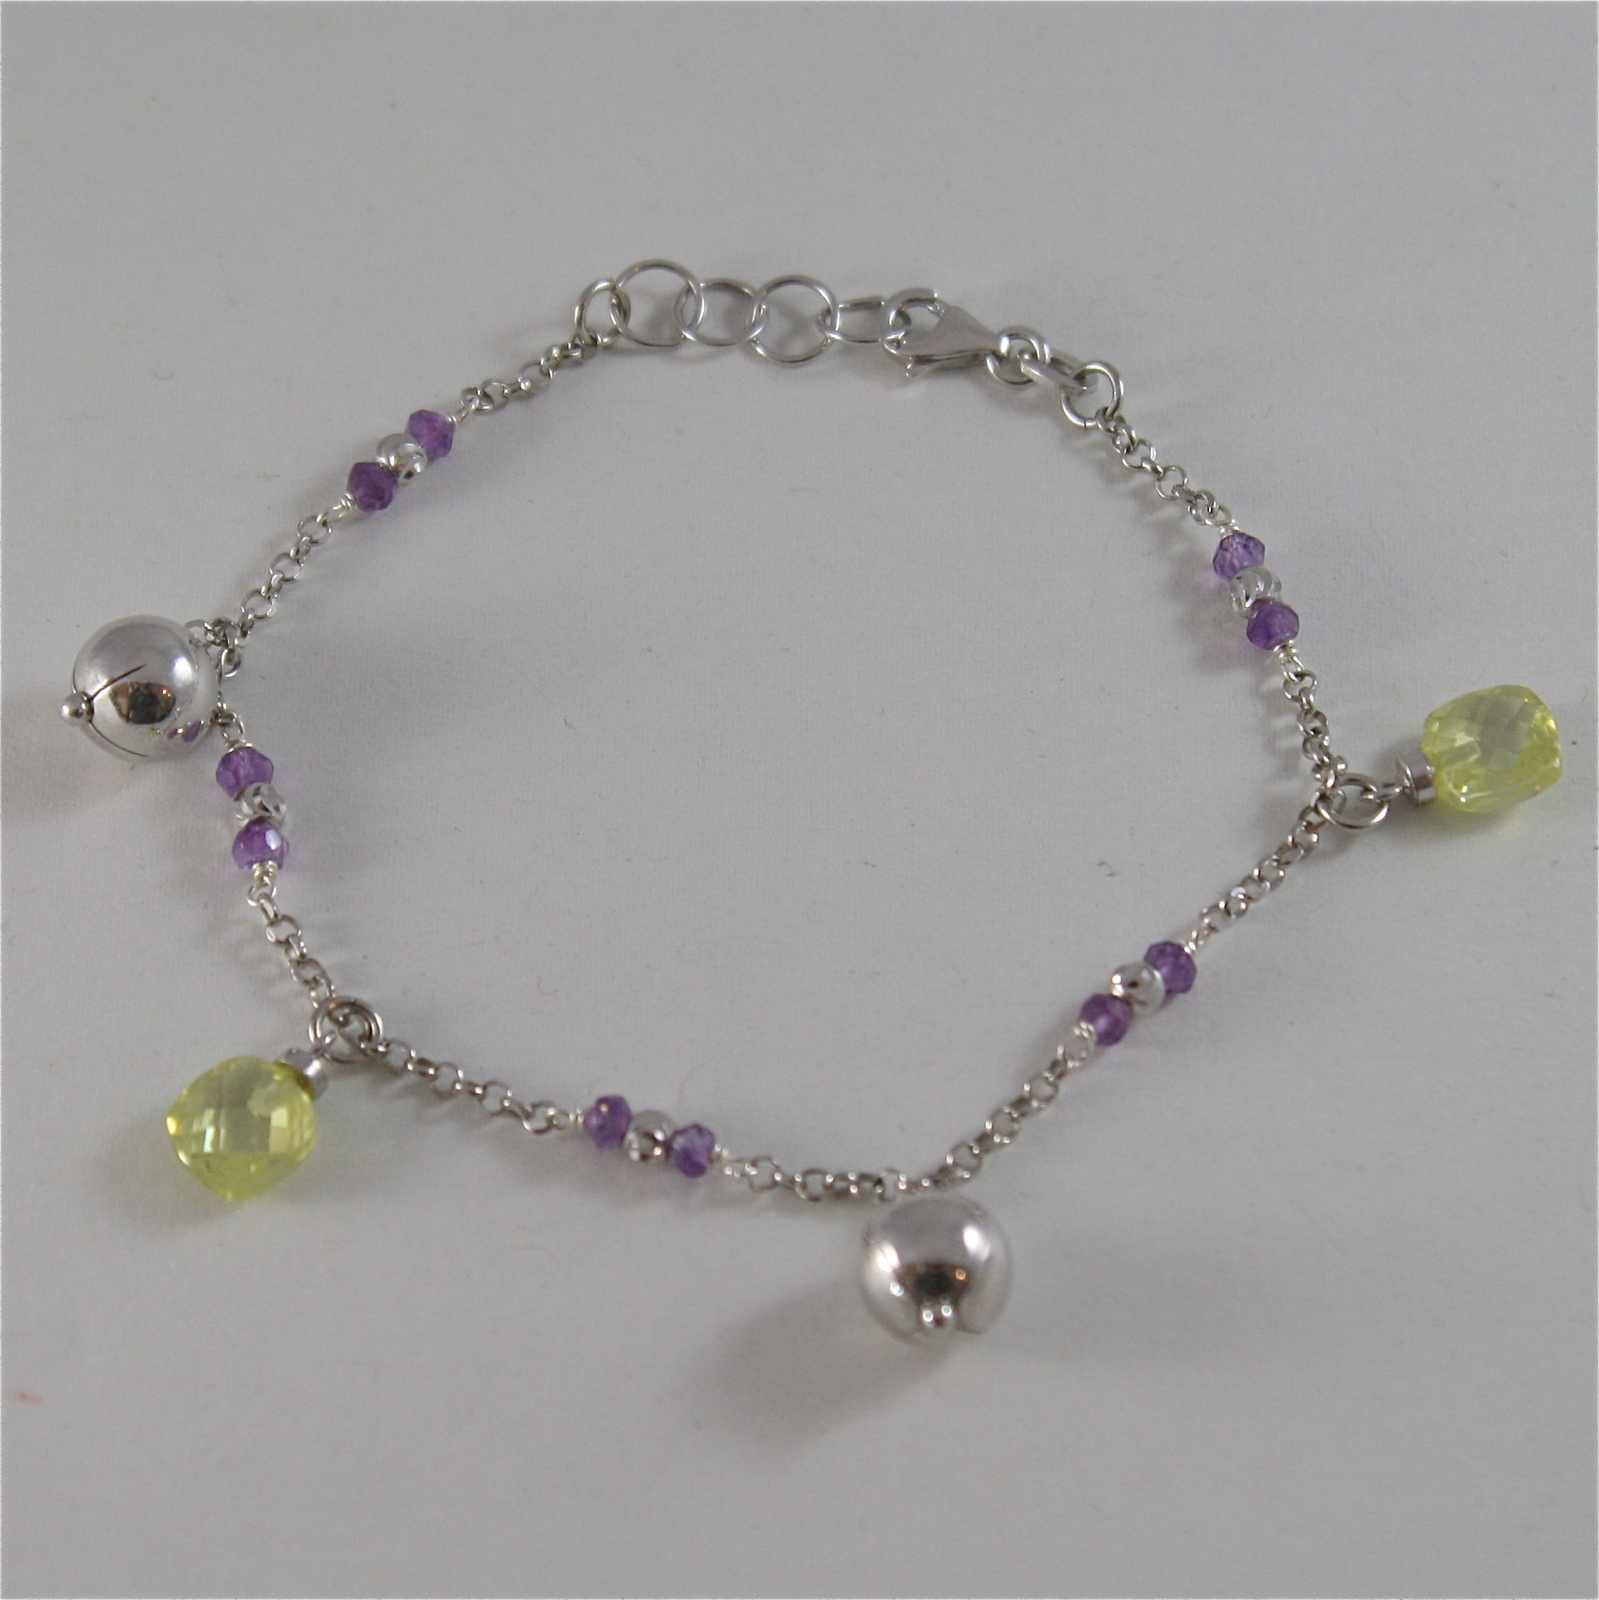 925 RODIUM SILVER BRACELET WITH FACETED BALLS, AMETHYST & CRYSTAL, MADE IN ITALY